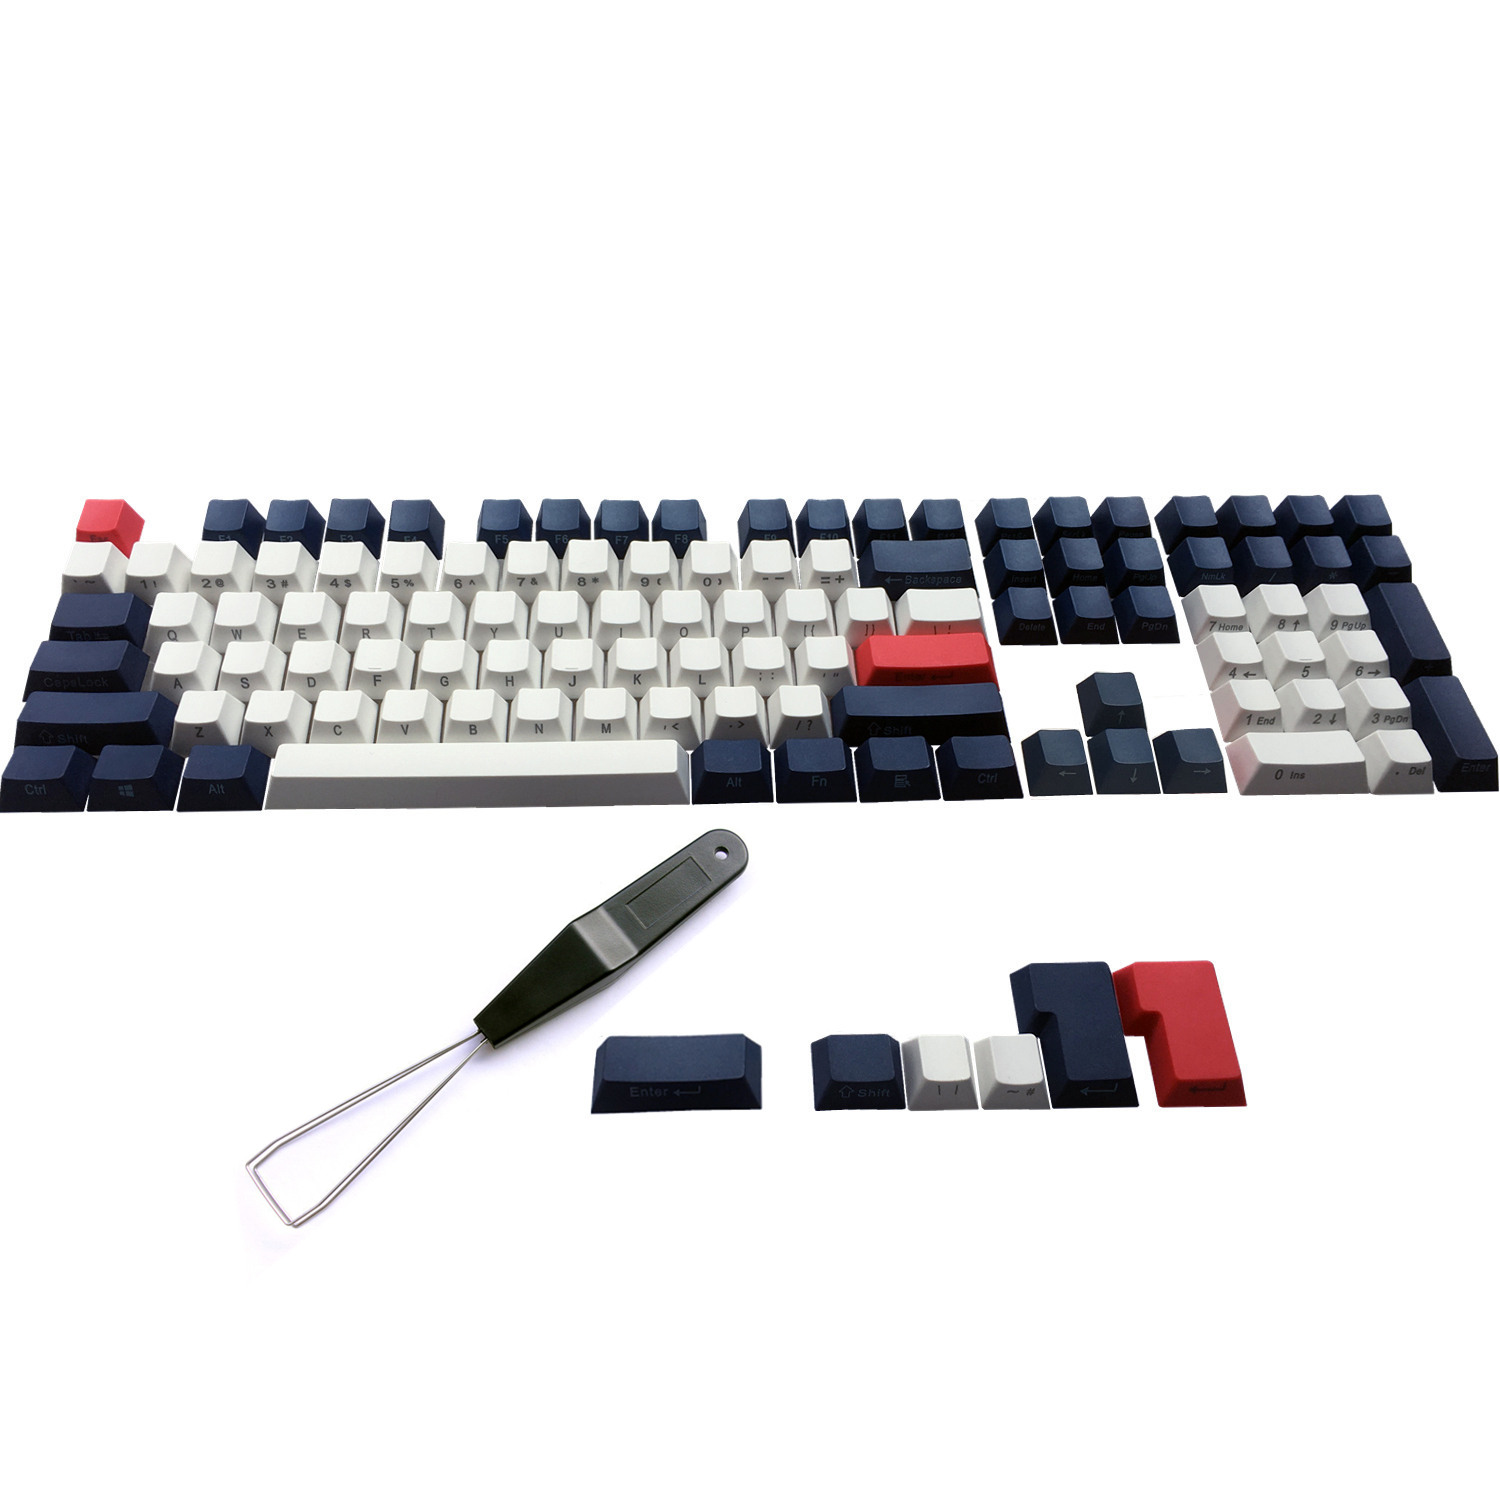 PBT Keycaps Side Printed ANSI ISO Cherry MX Keycap Set For 60%/TKL 87/104/108 MX Mechanical Keyboard Fit Anne IKBC Akko X Ducky